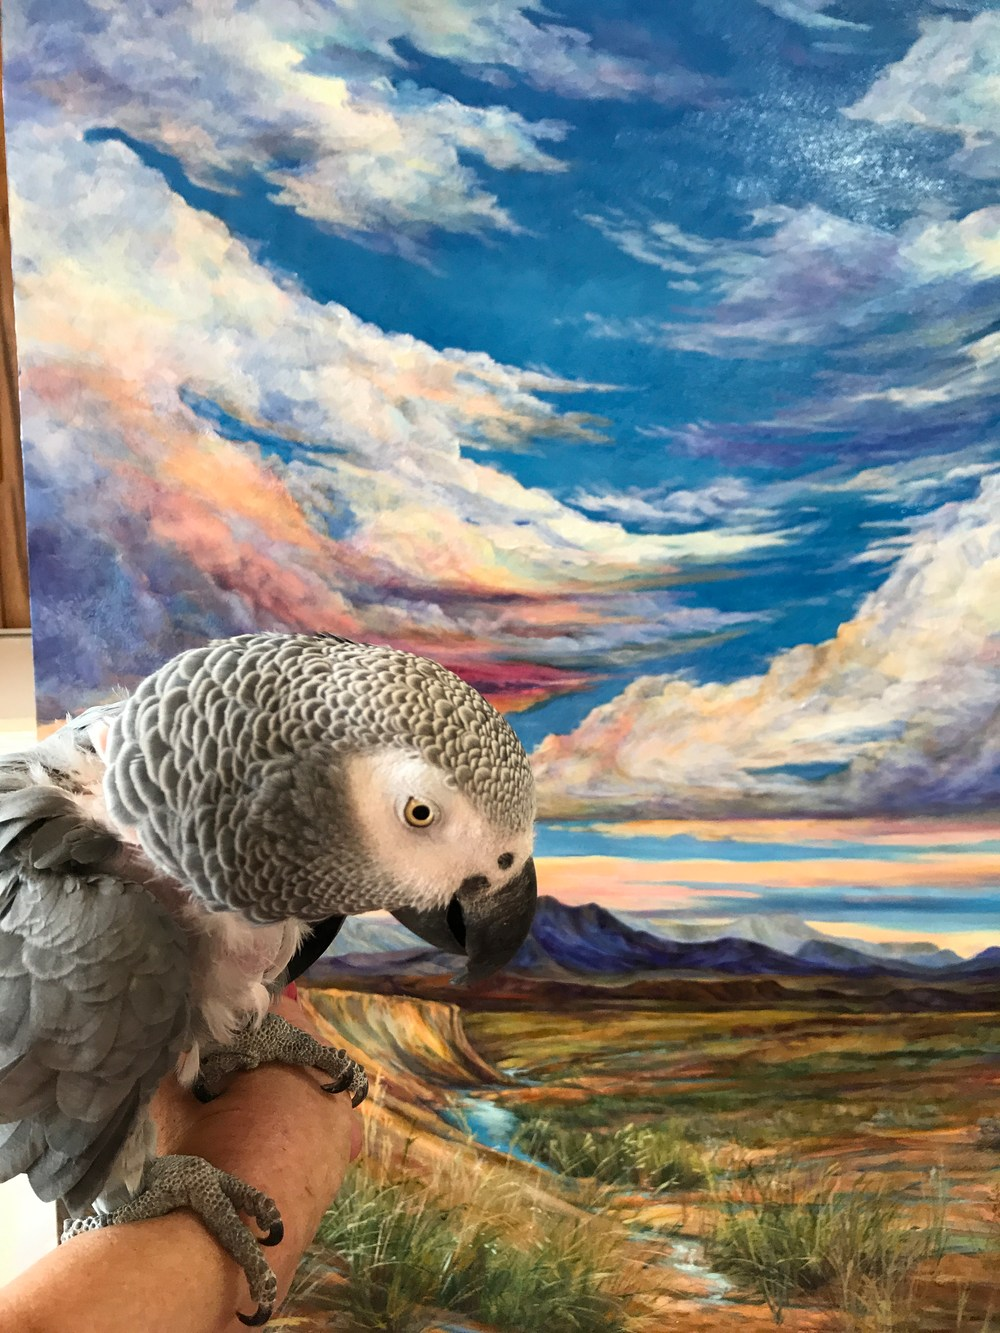 grey parrot admires a landscape painting on the easel